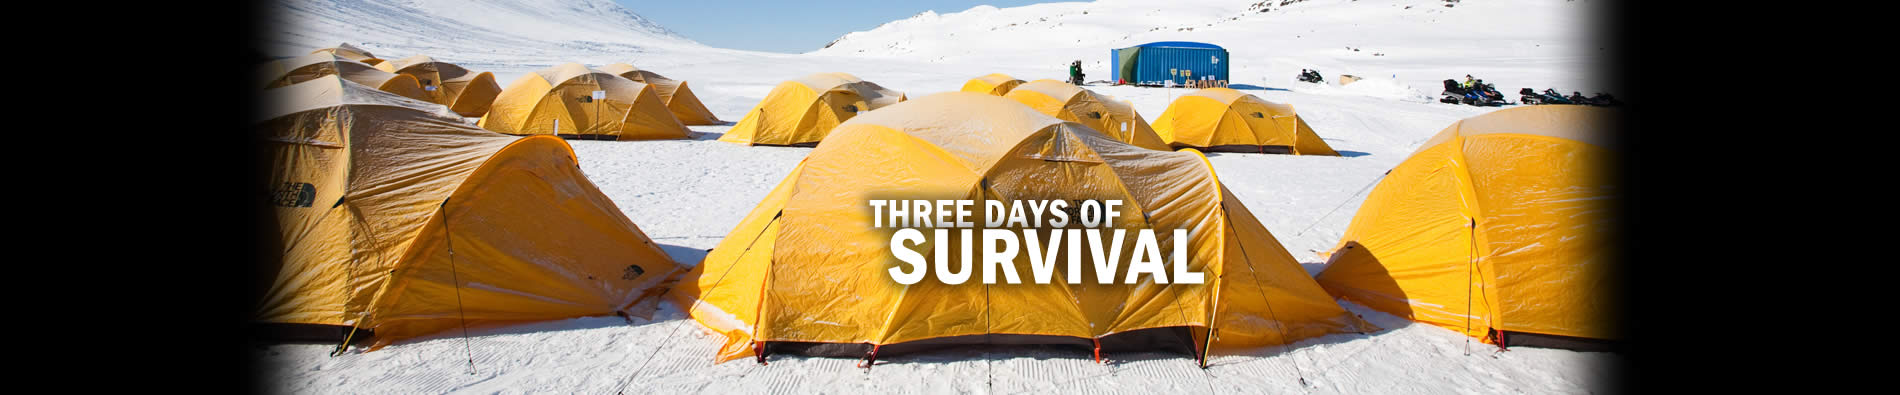 Three days of survival